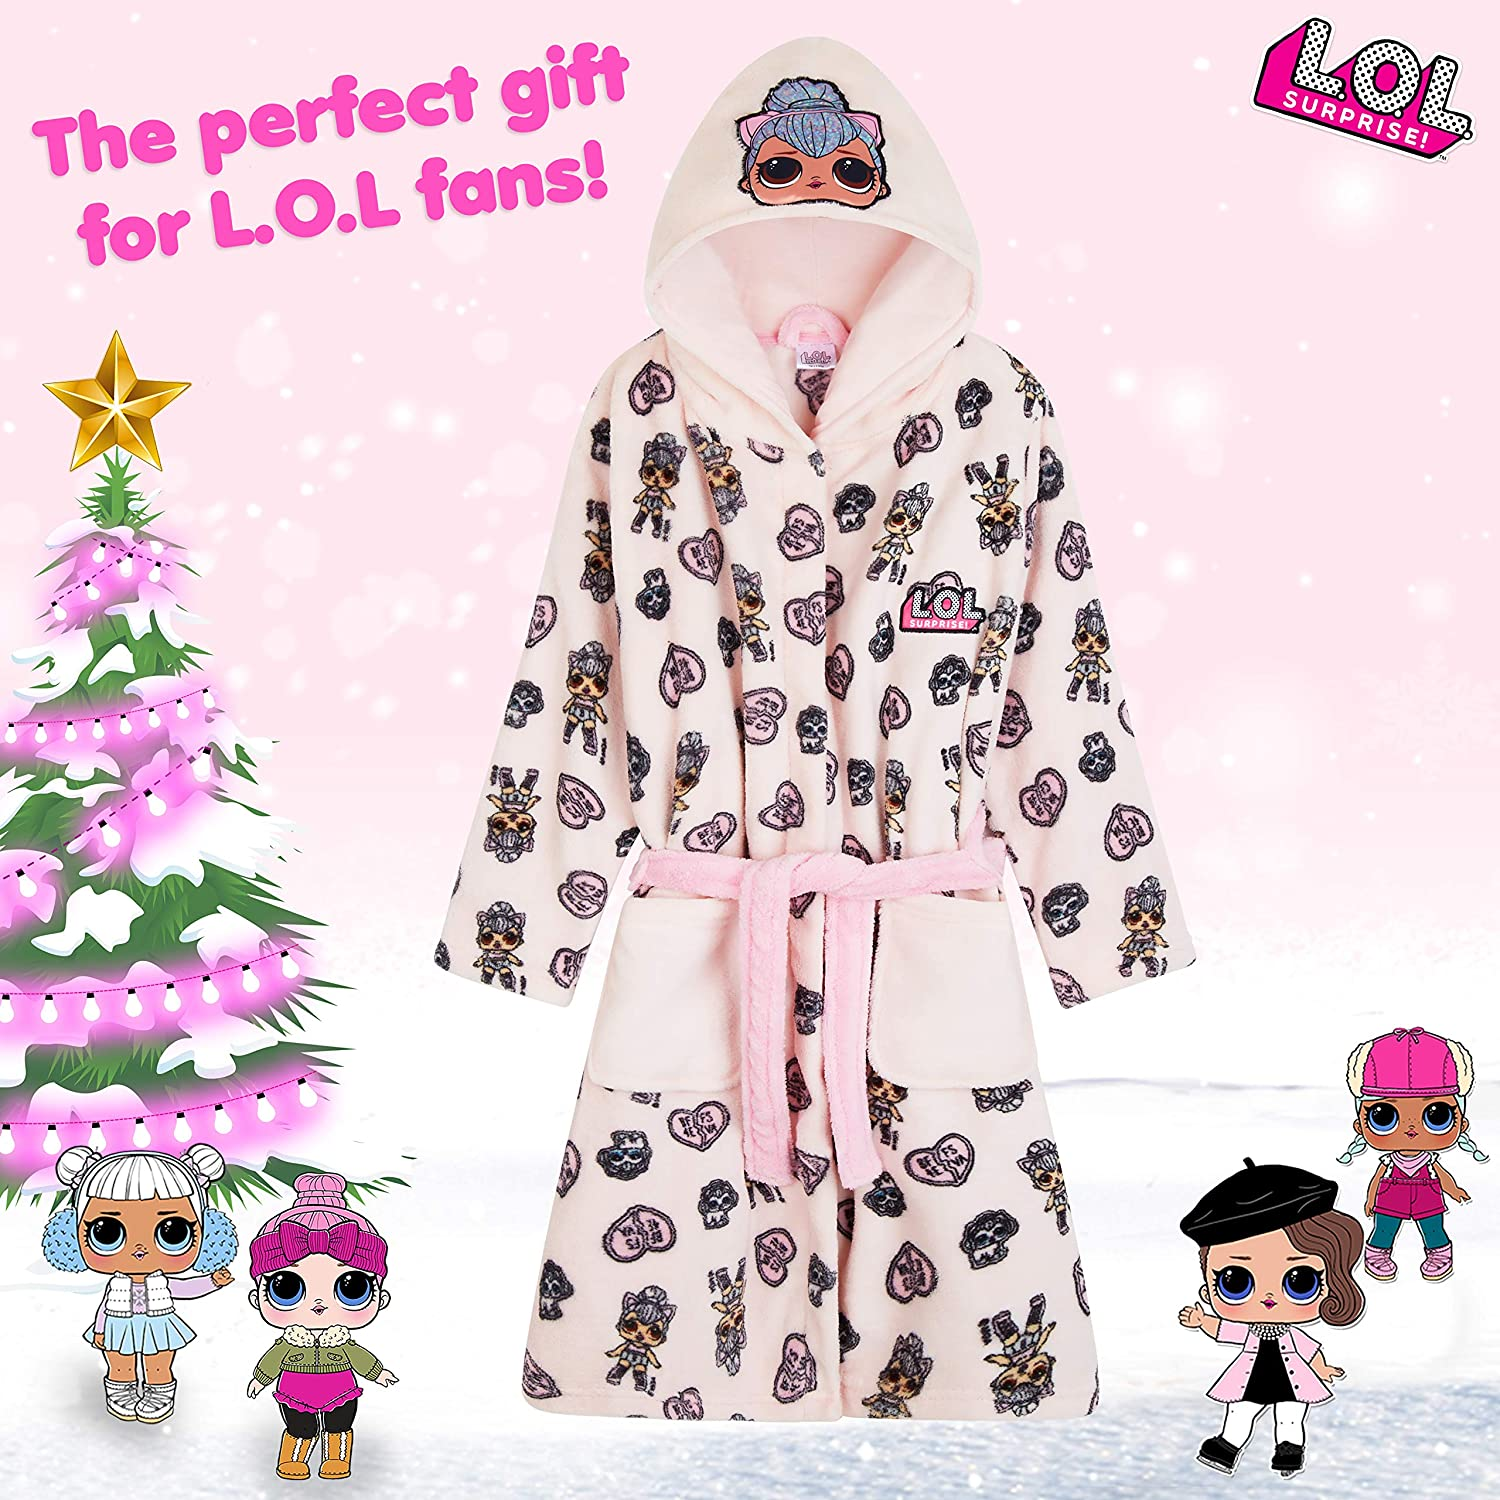 Soft Fleece Girls Dressing Gowns Surprise Kids Hooded Bath Robe L.O.L Cat and Unicorn Gifts for Girls Dressing Gown with LOL Unicorn and Kitty Queen